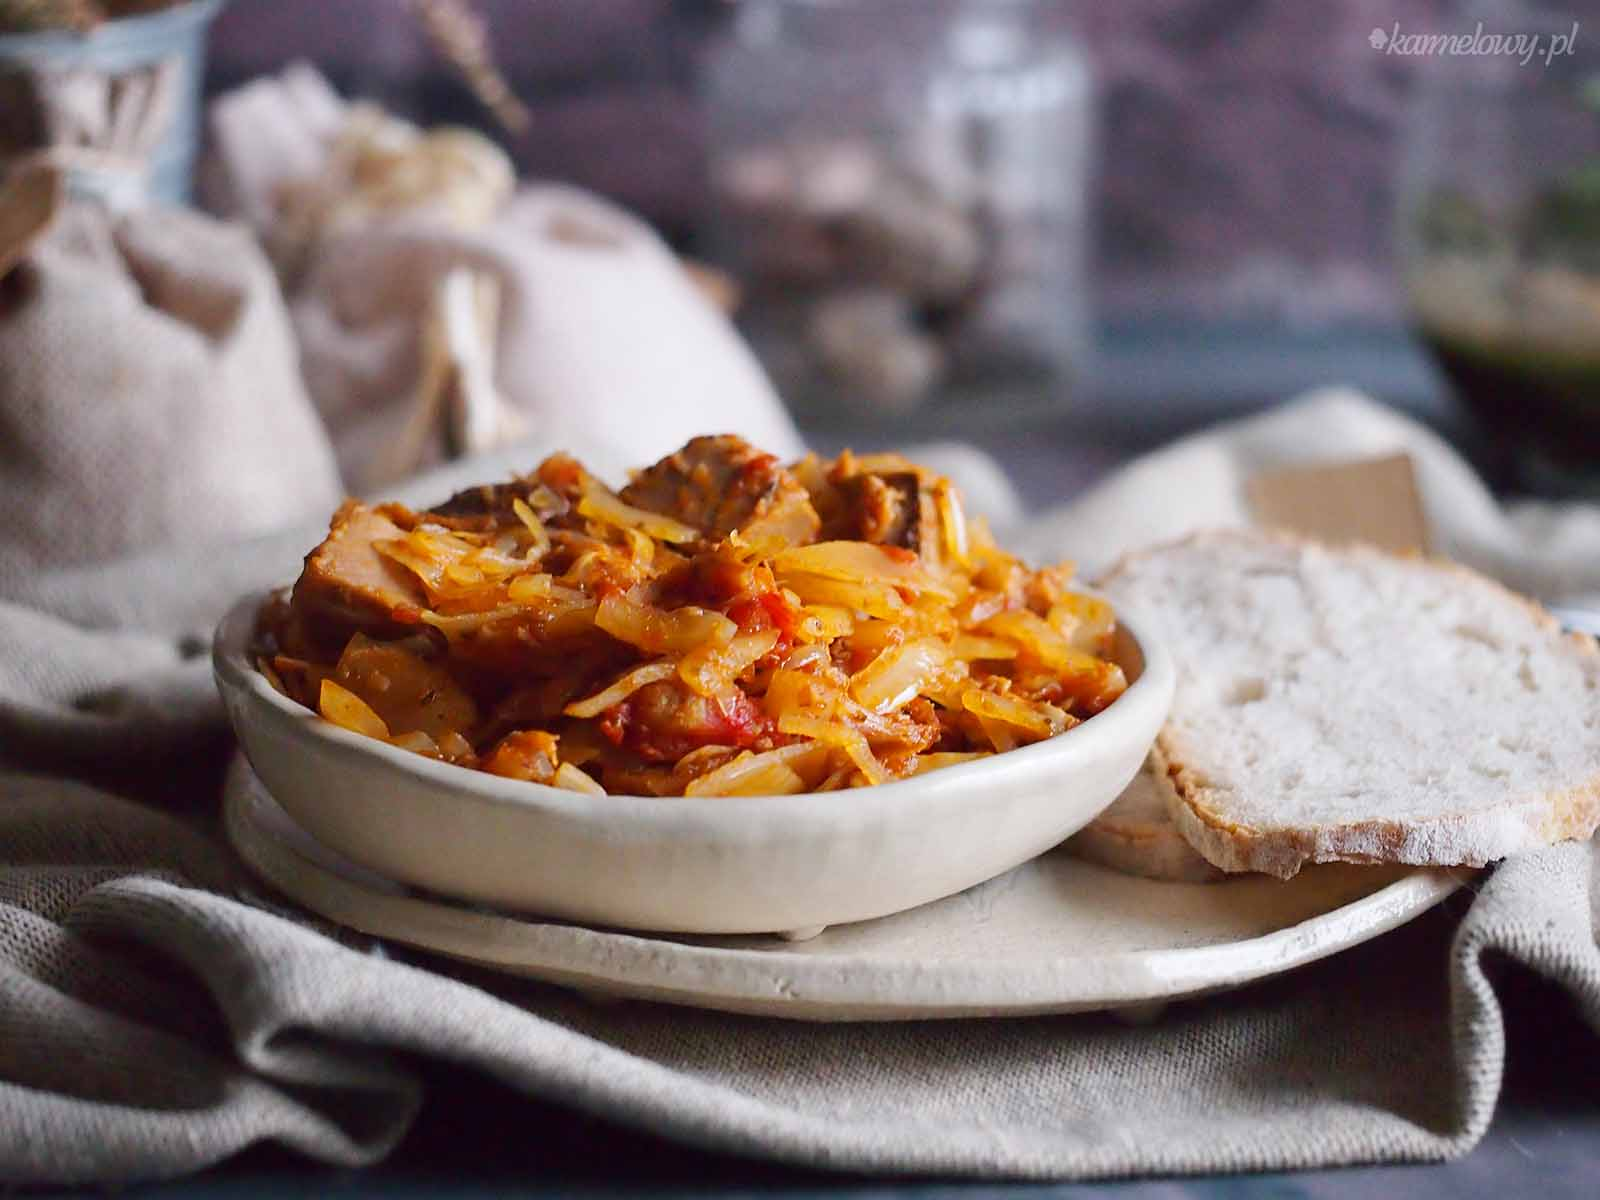 Miesny-bigos-z-grzybami-Meaty-cabbage-stew-with-mushrooms